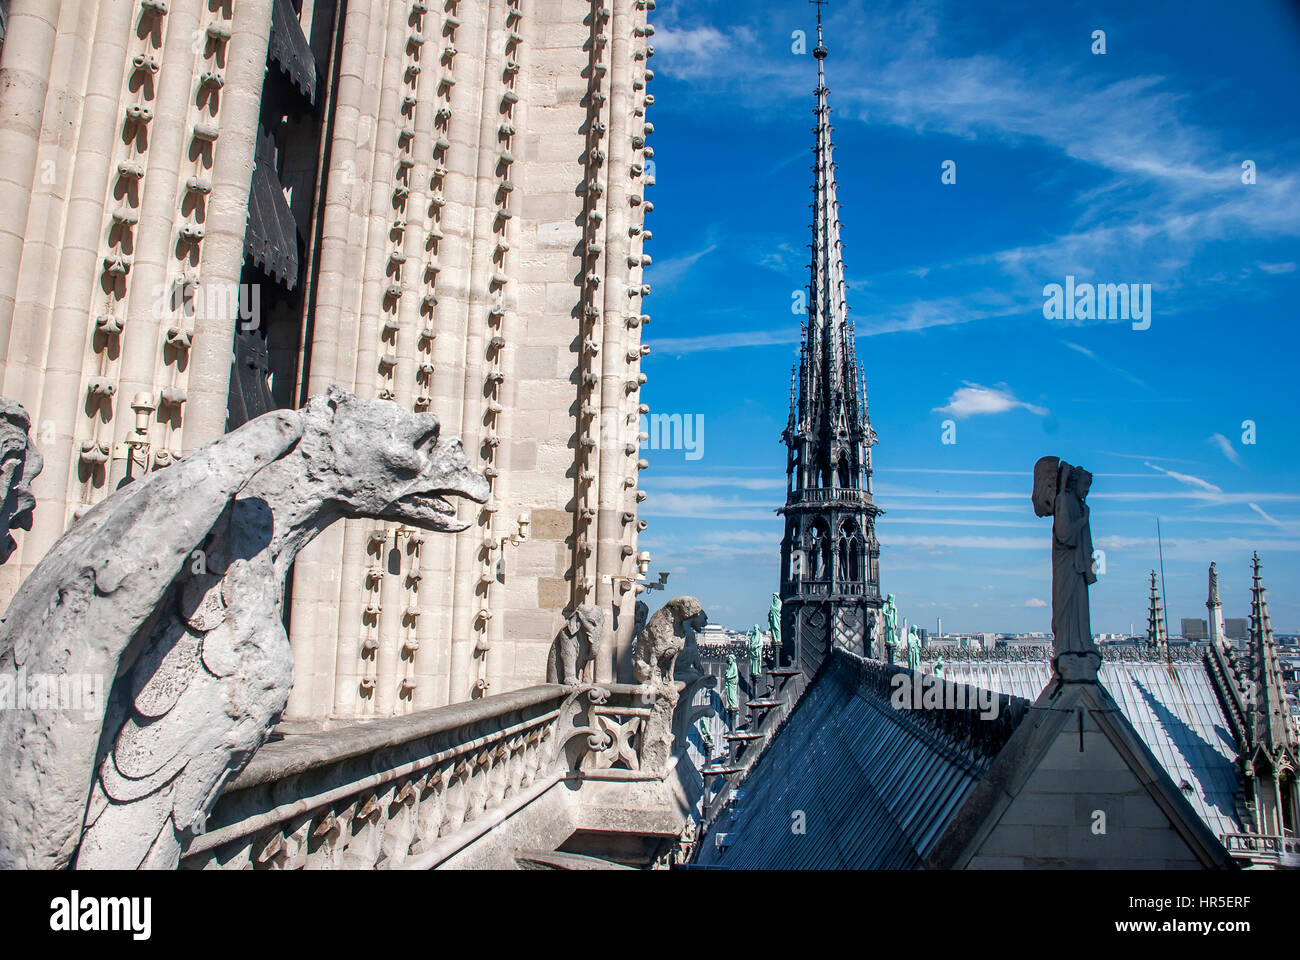 Cityscape photographed from the top of the Notre Dame Cathedral, with Gargoyles, in Paris, France - Stock Image